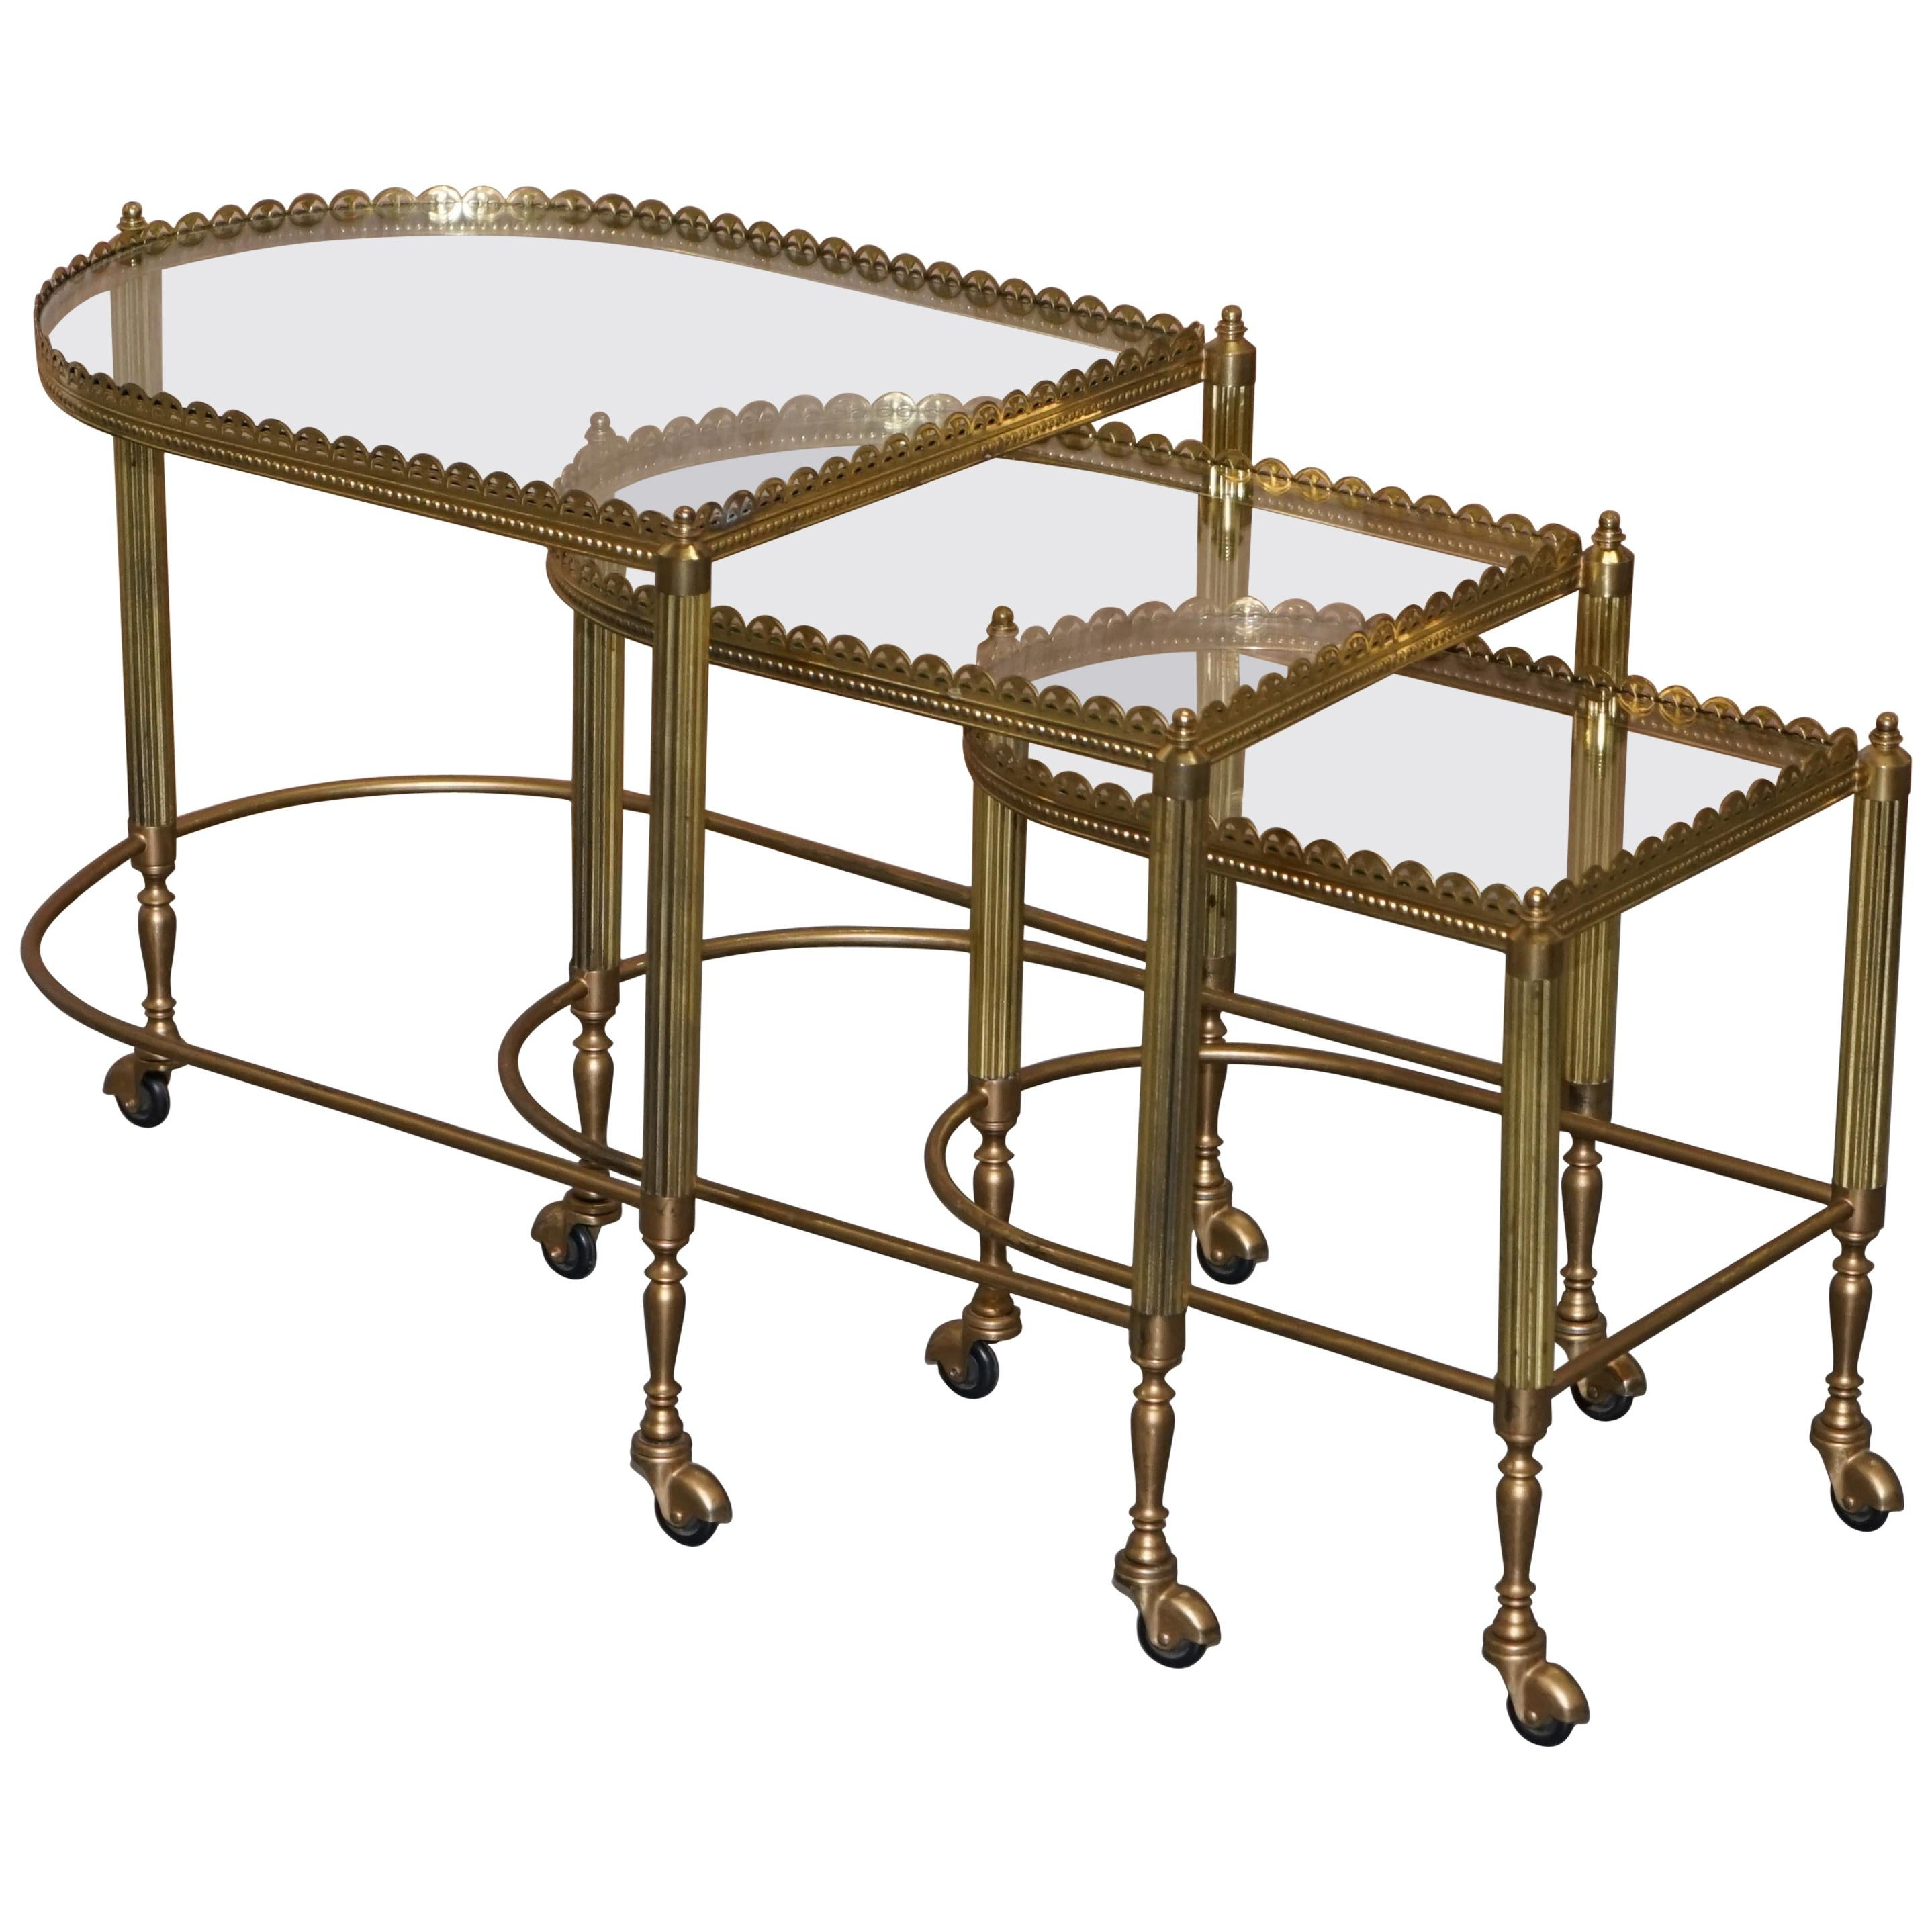 Nest of Three Brass & Glass Trolley Tables by Maison Bagues France, Midcentury